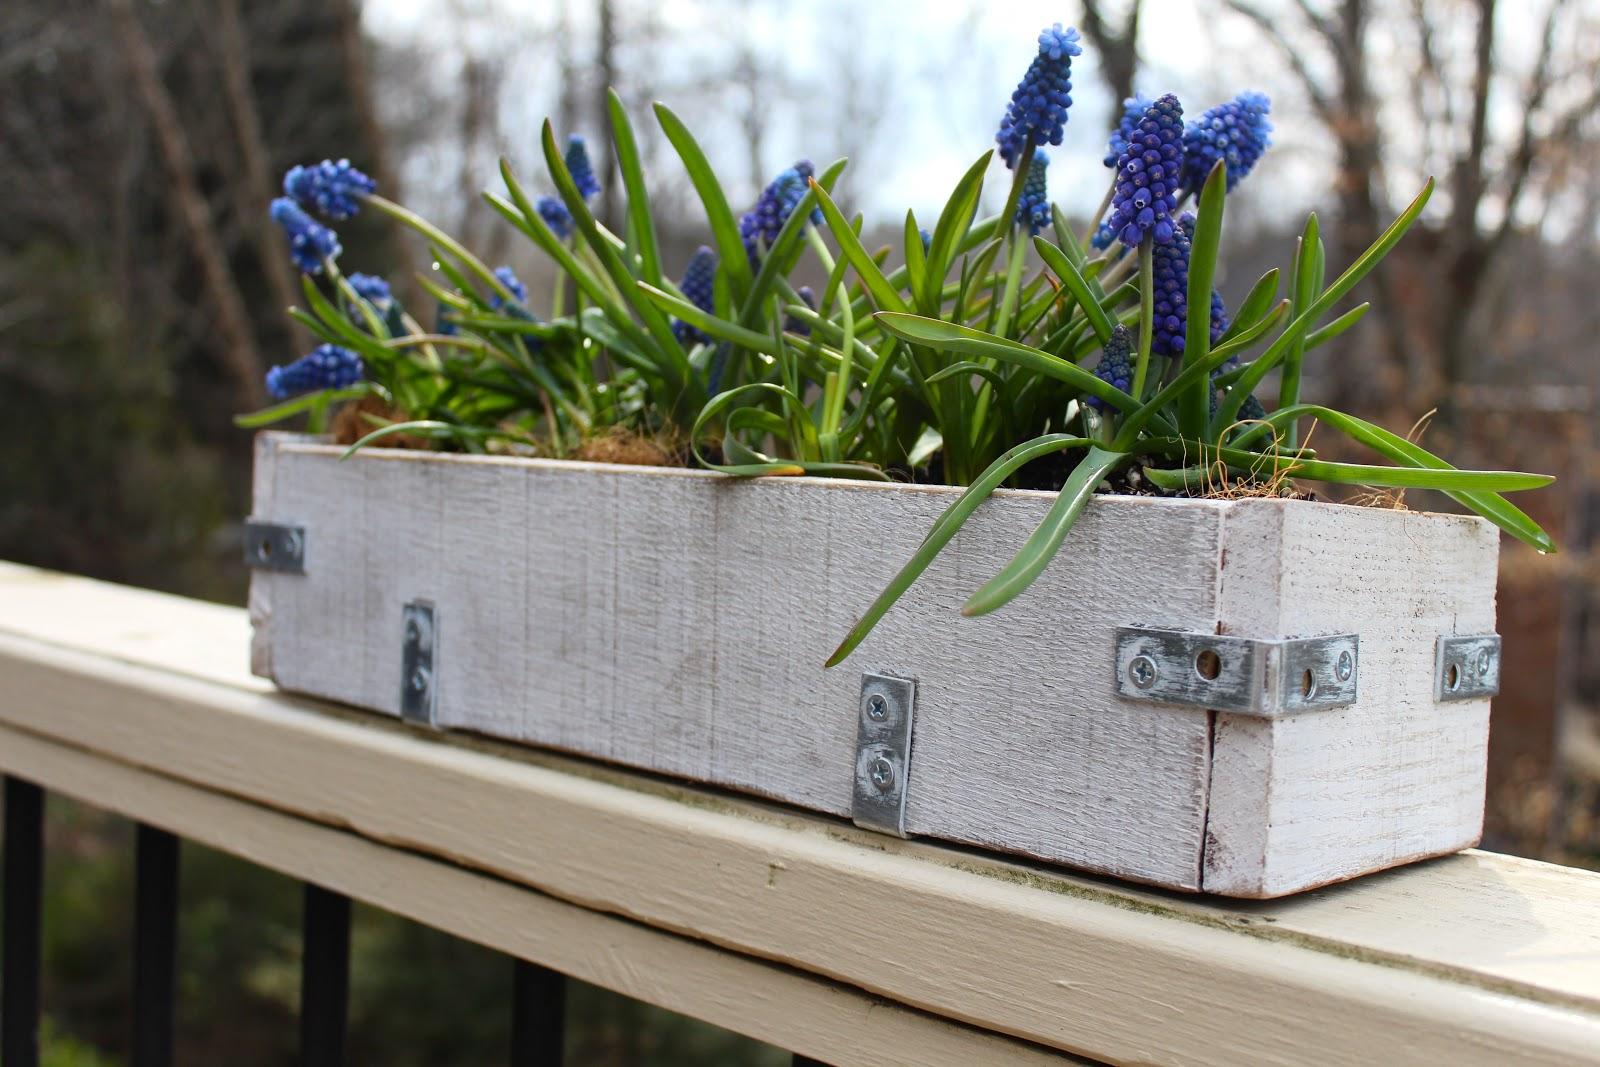 Diy Planter Box From Pallets Diy Pallet Wood Planter Box